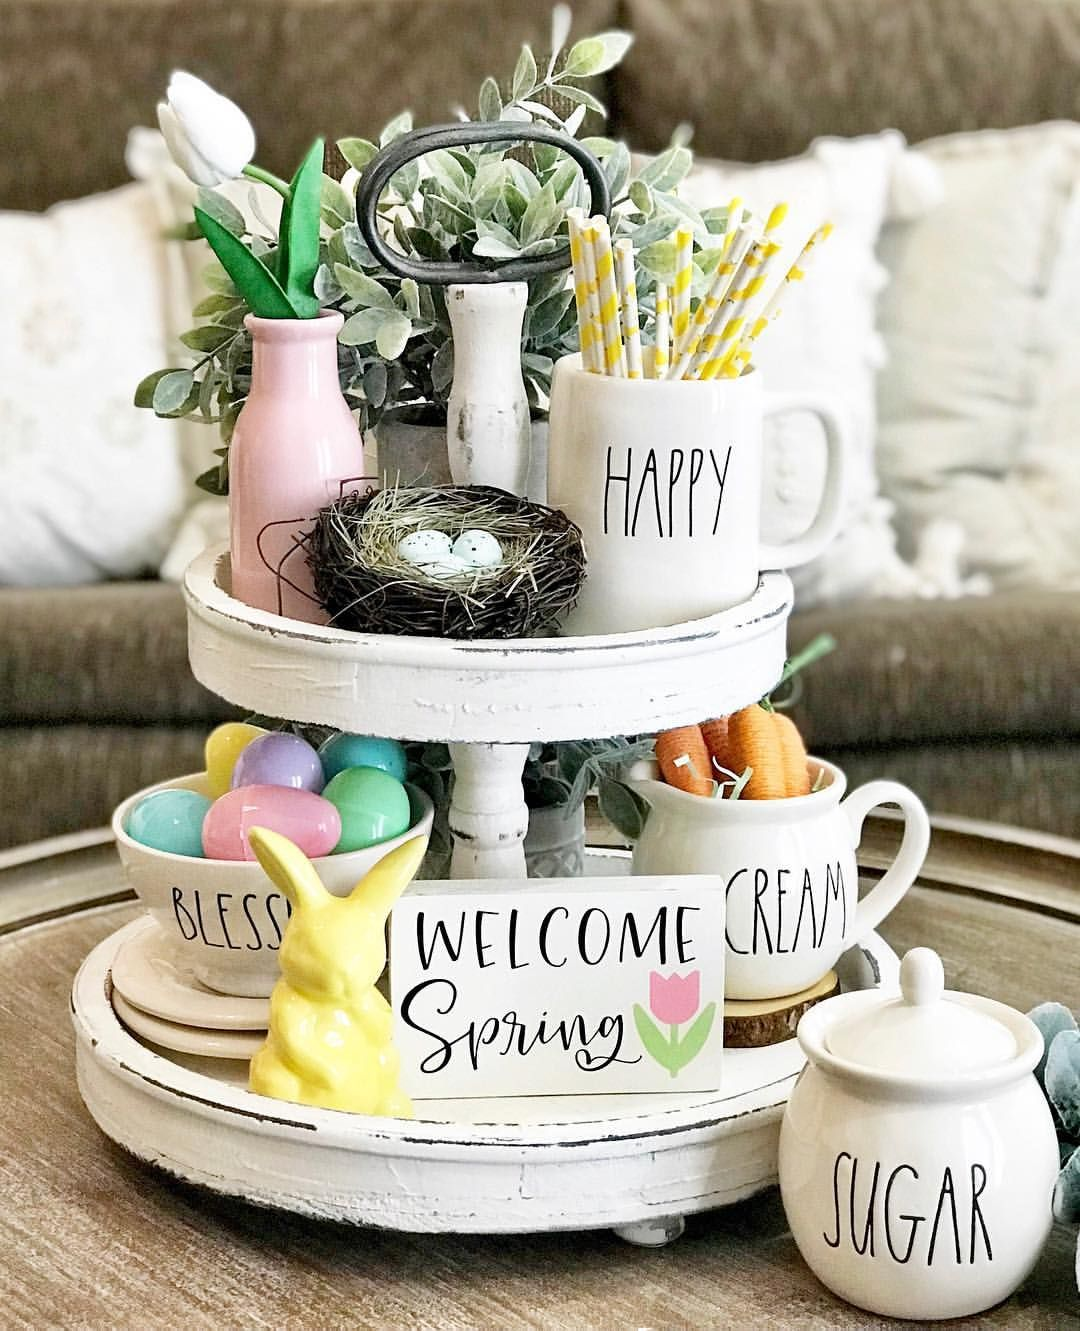 Y All I Have Never Seen Our Wooden Two Tier Stand In White These Won T Arrive Until Early April But I C Tray Decor Kitchen Tray Decor Rustic Easter Decor